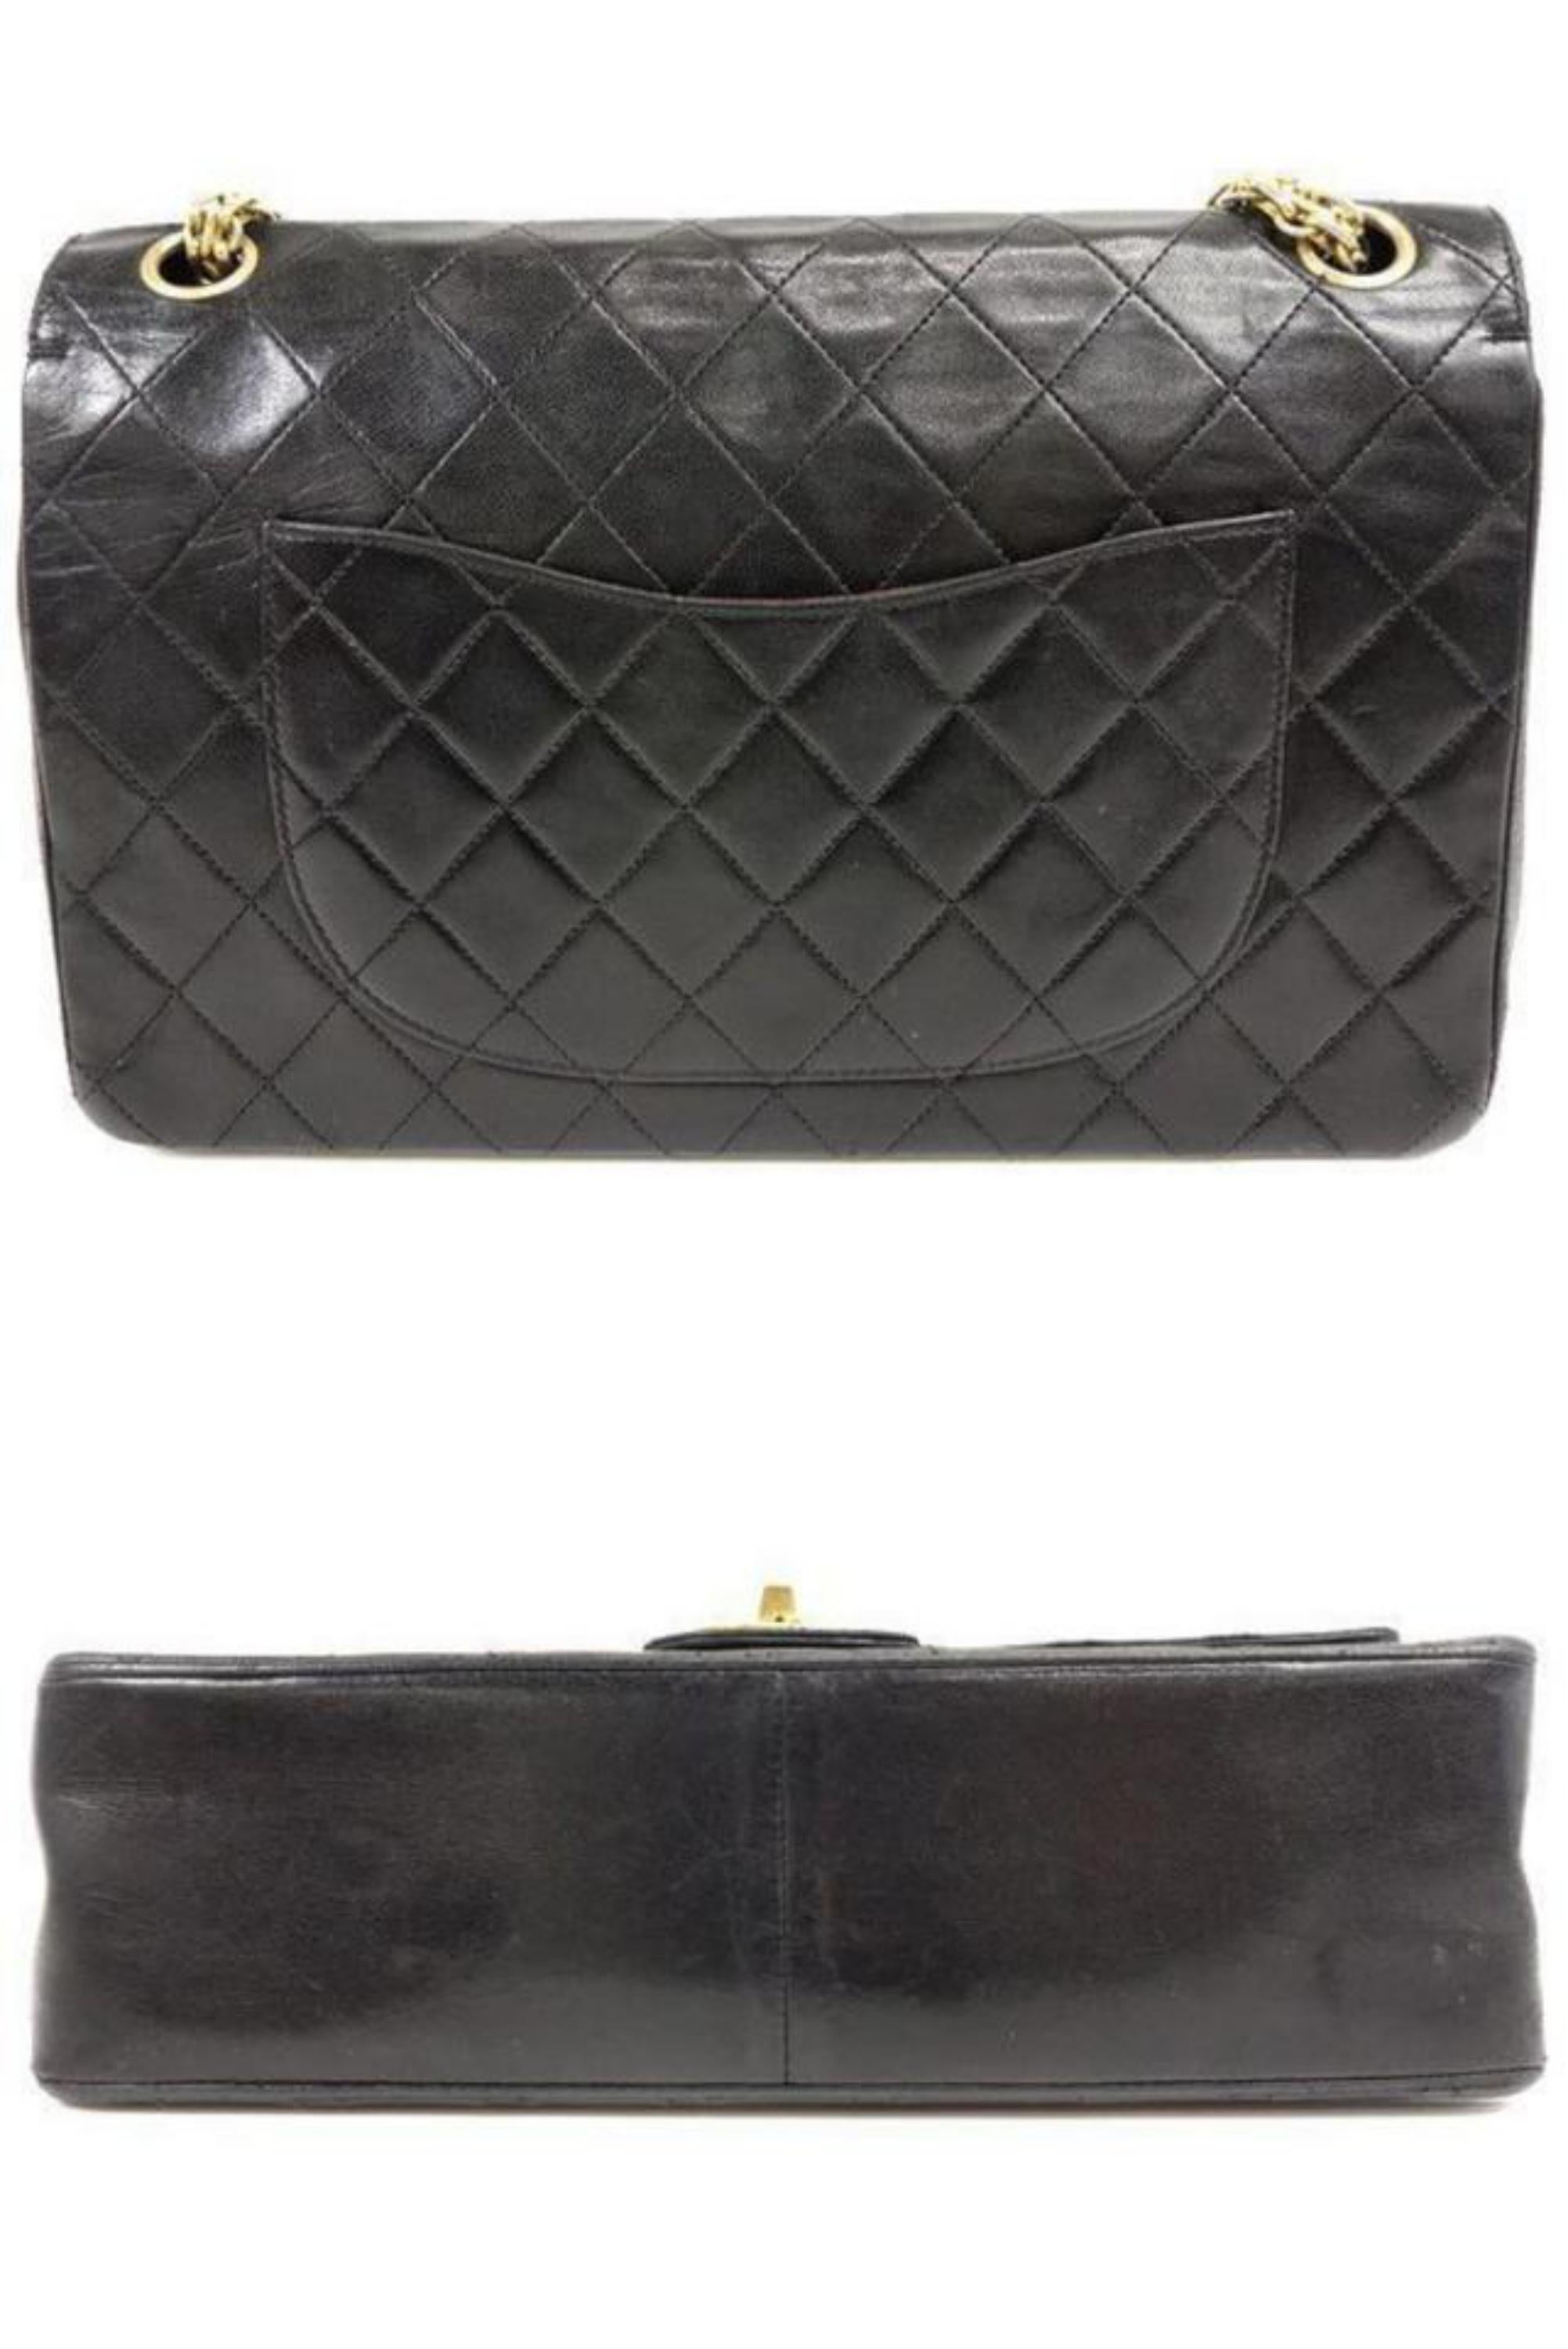 0616fca37dc6 Chanel Classic Flap Mademoiselle Medium Quilted Lambskin 234110 Black  Leather Sh For Sale at 1stdibs